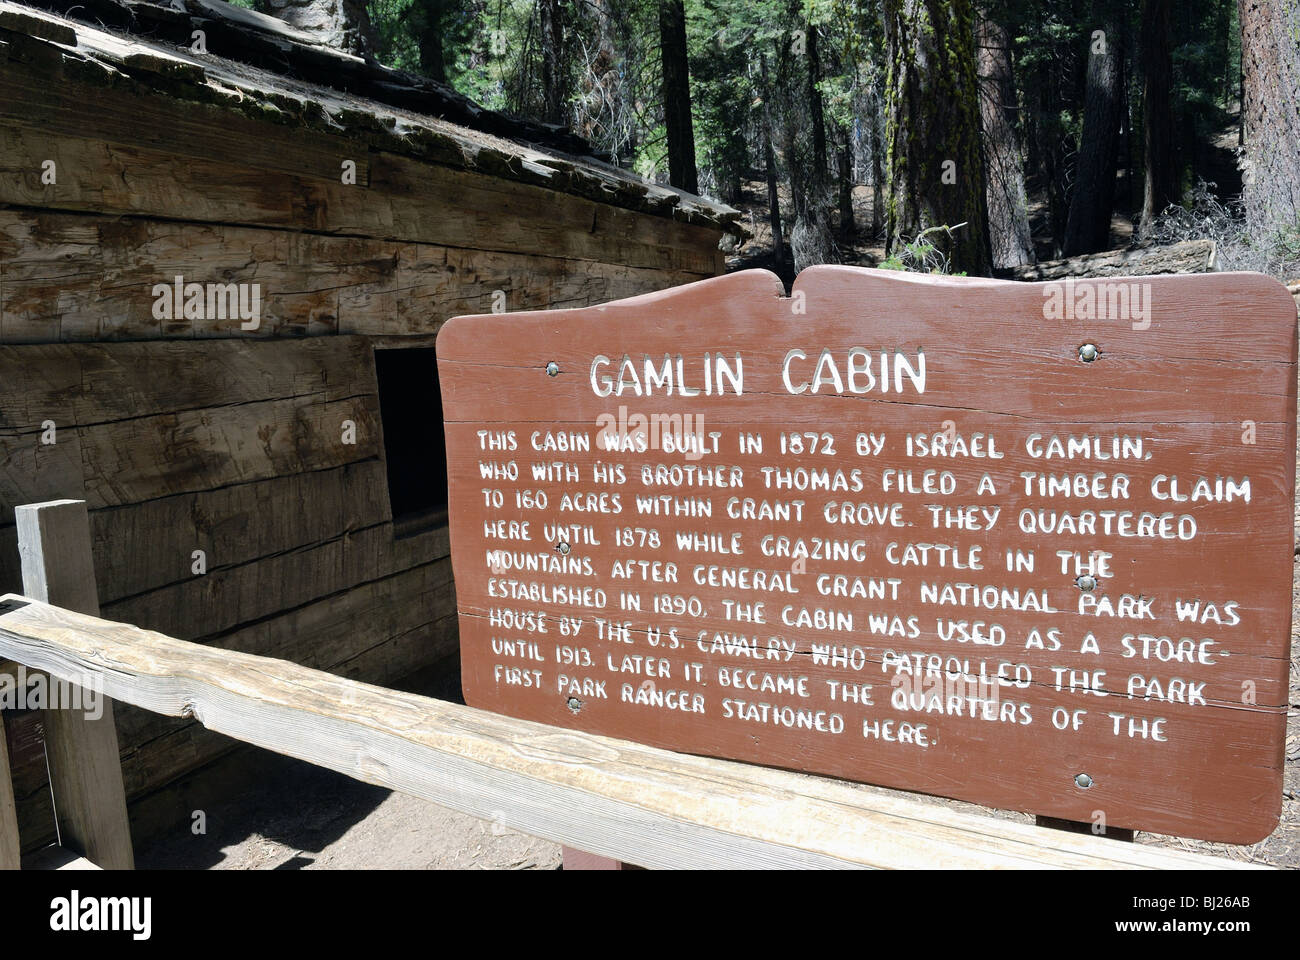 sequoia kings parks sequoianp giant canyon in nevada national camp and home park cabins sierra forest bearpaw high